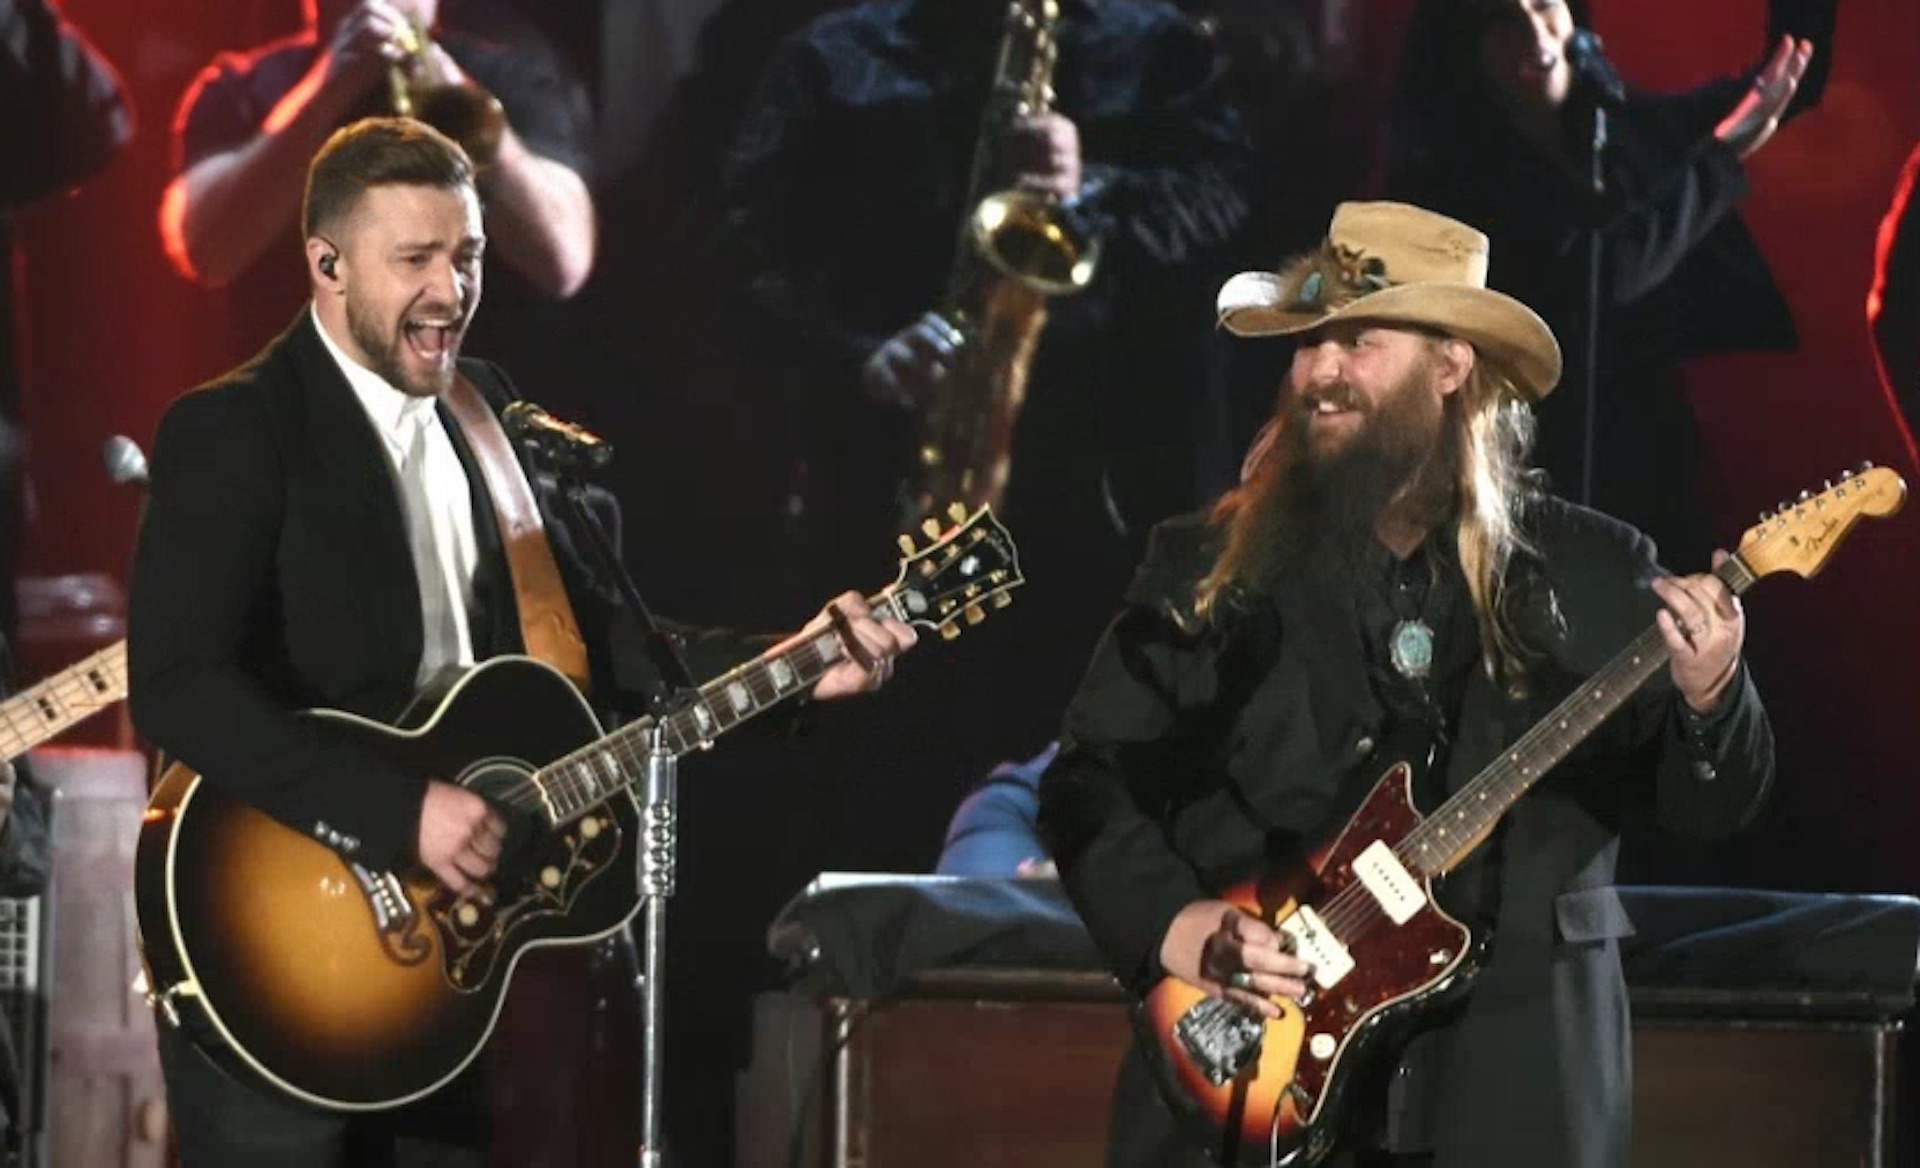 A year after Chris Stapleton's CMAs shocker, country music is still wondering how much it mattered